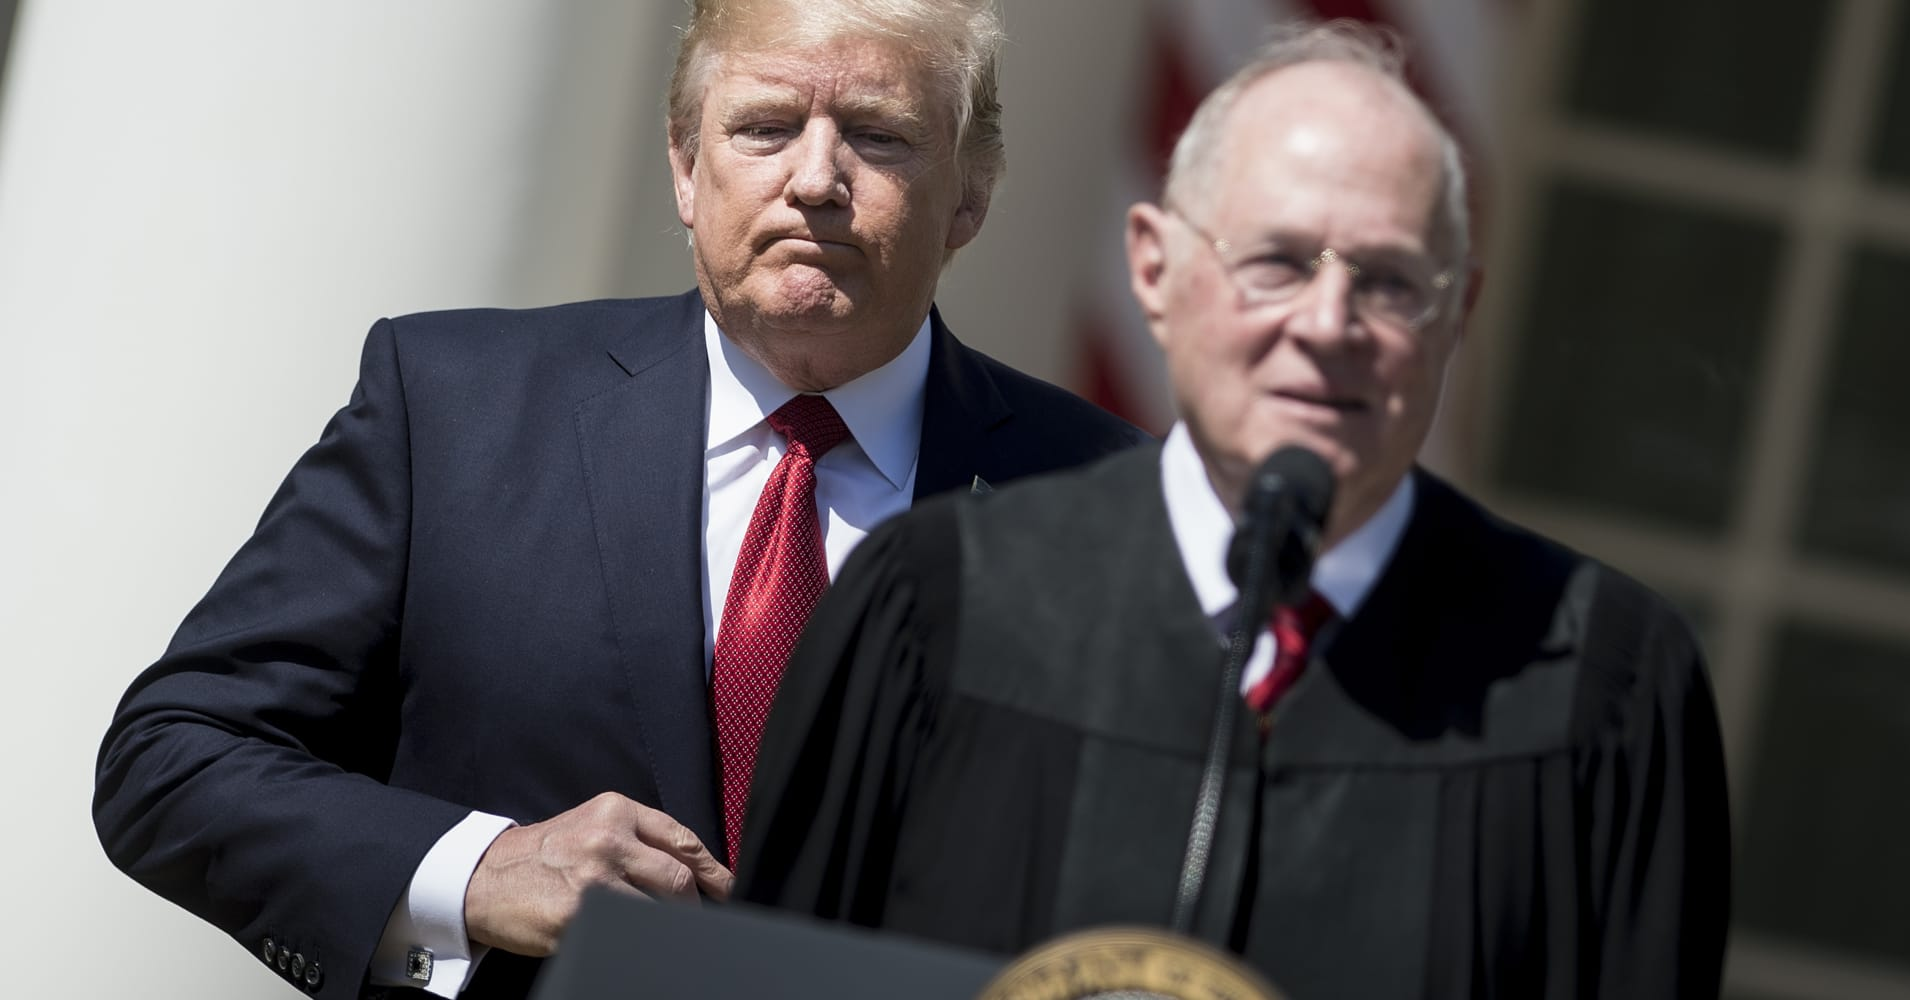 Trump privately indicated that he has settled on a Supreme Court nominee